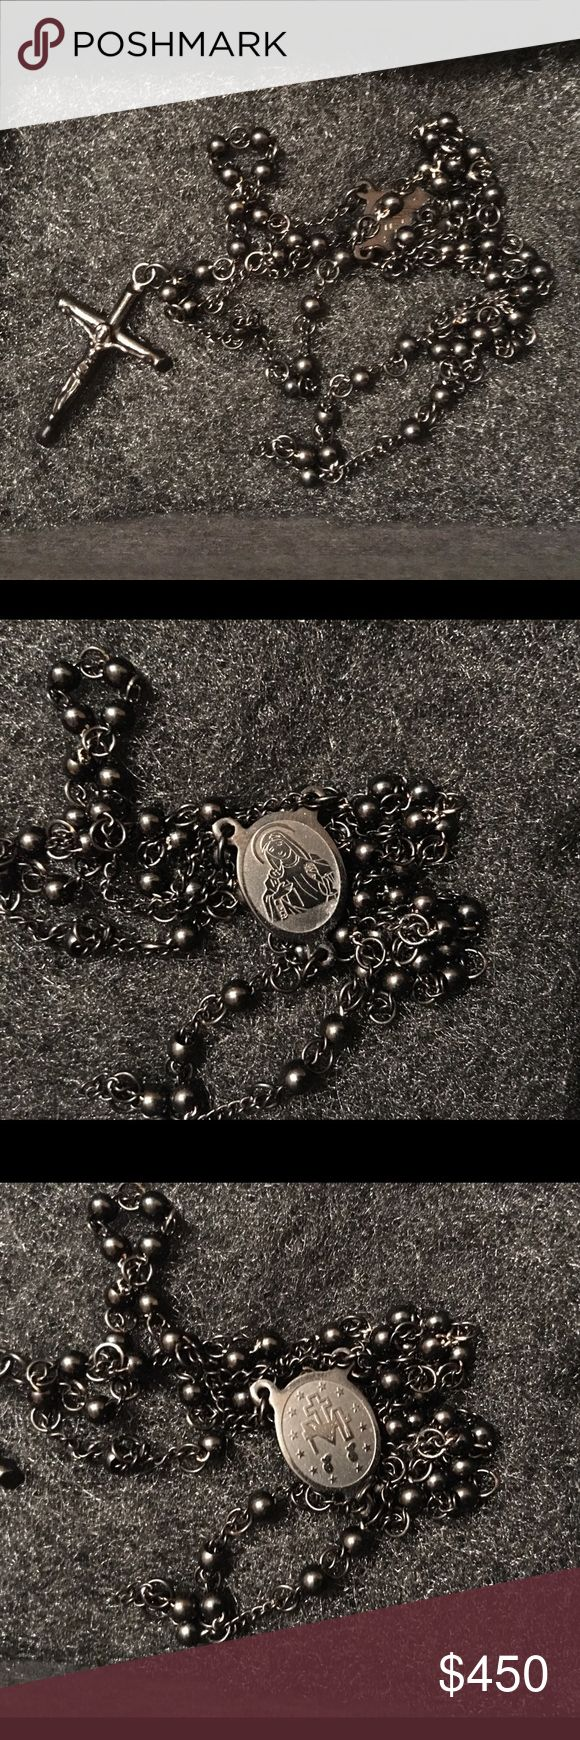 🎉SALE🎉Alexander McQueen Rosary Necklace Blacked out Alexander McQueen men's/women's stainless steel rosary necklace. Brand new in box. Serious inquiries only. Alexander McQueen Accessories Jewelry